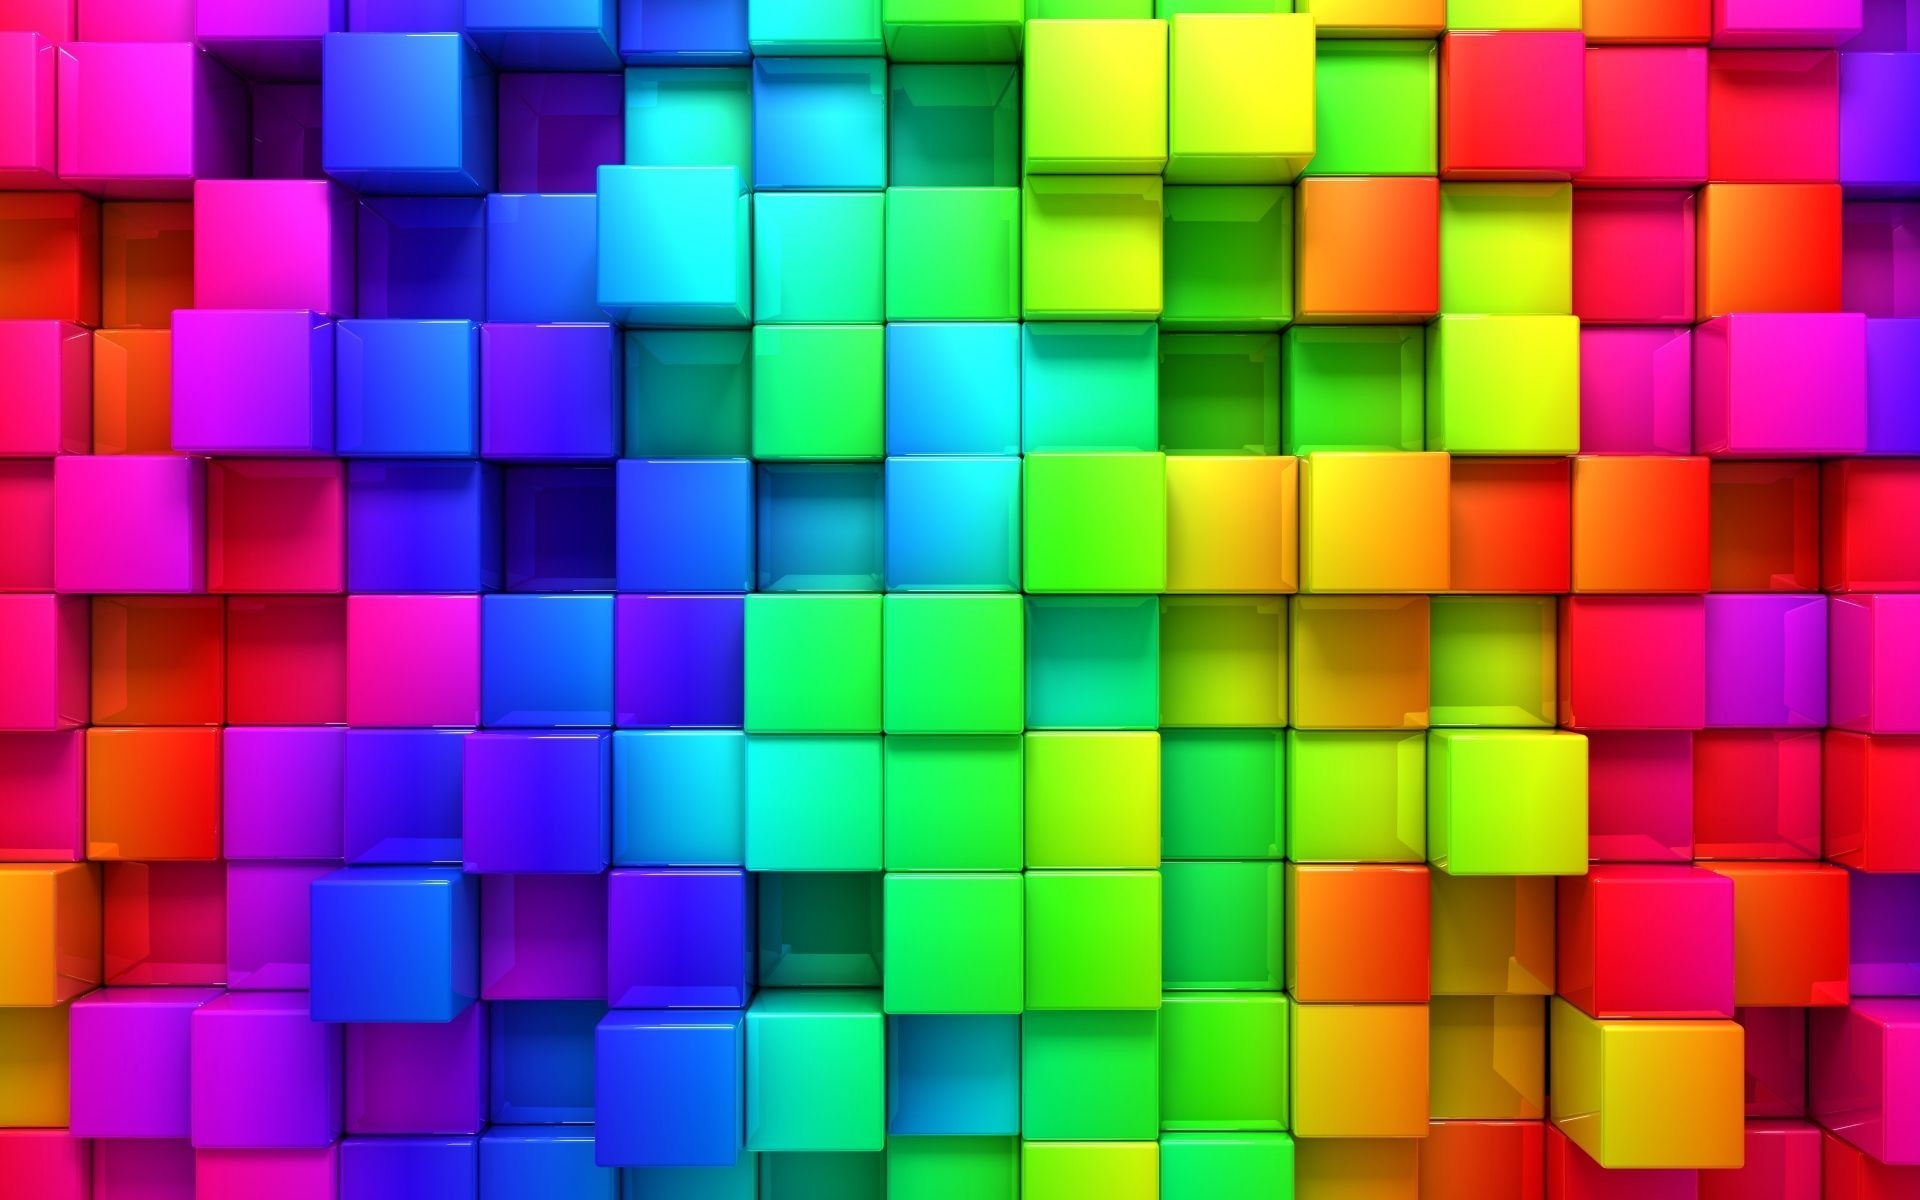 1920x1200 Abstract Art Background Blue Colorful Colors Lines Glowing Neon Wallpapers  Desktop Wallpaper Elegant Art Colorful 3d